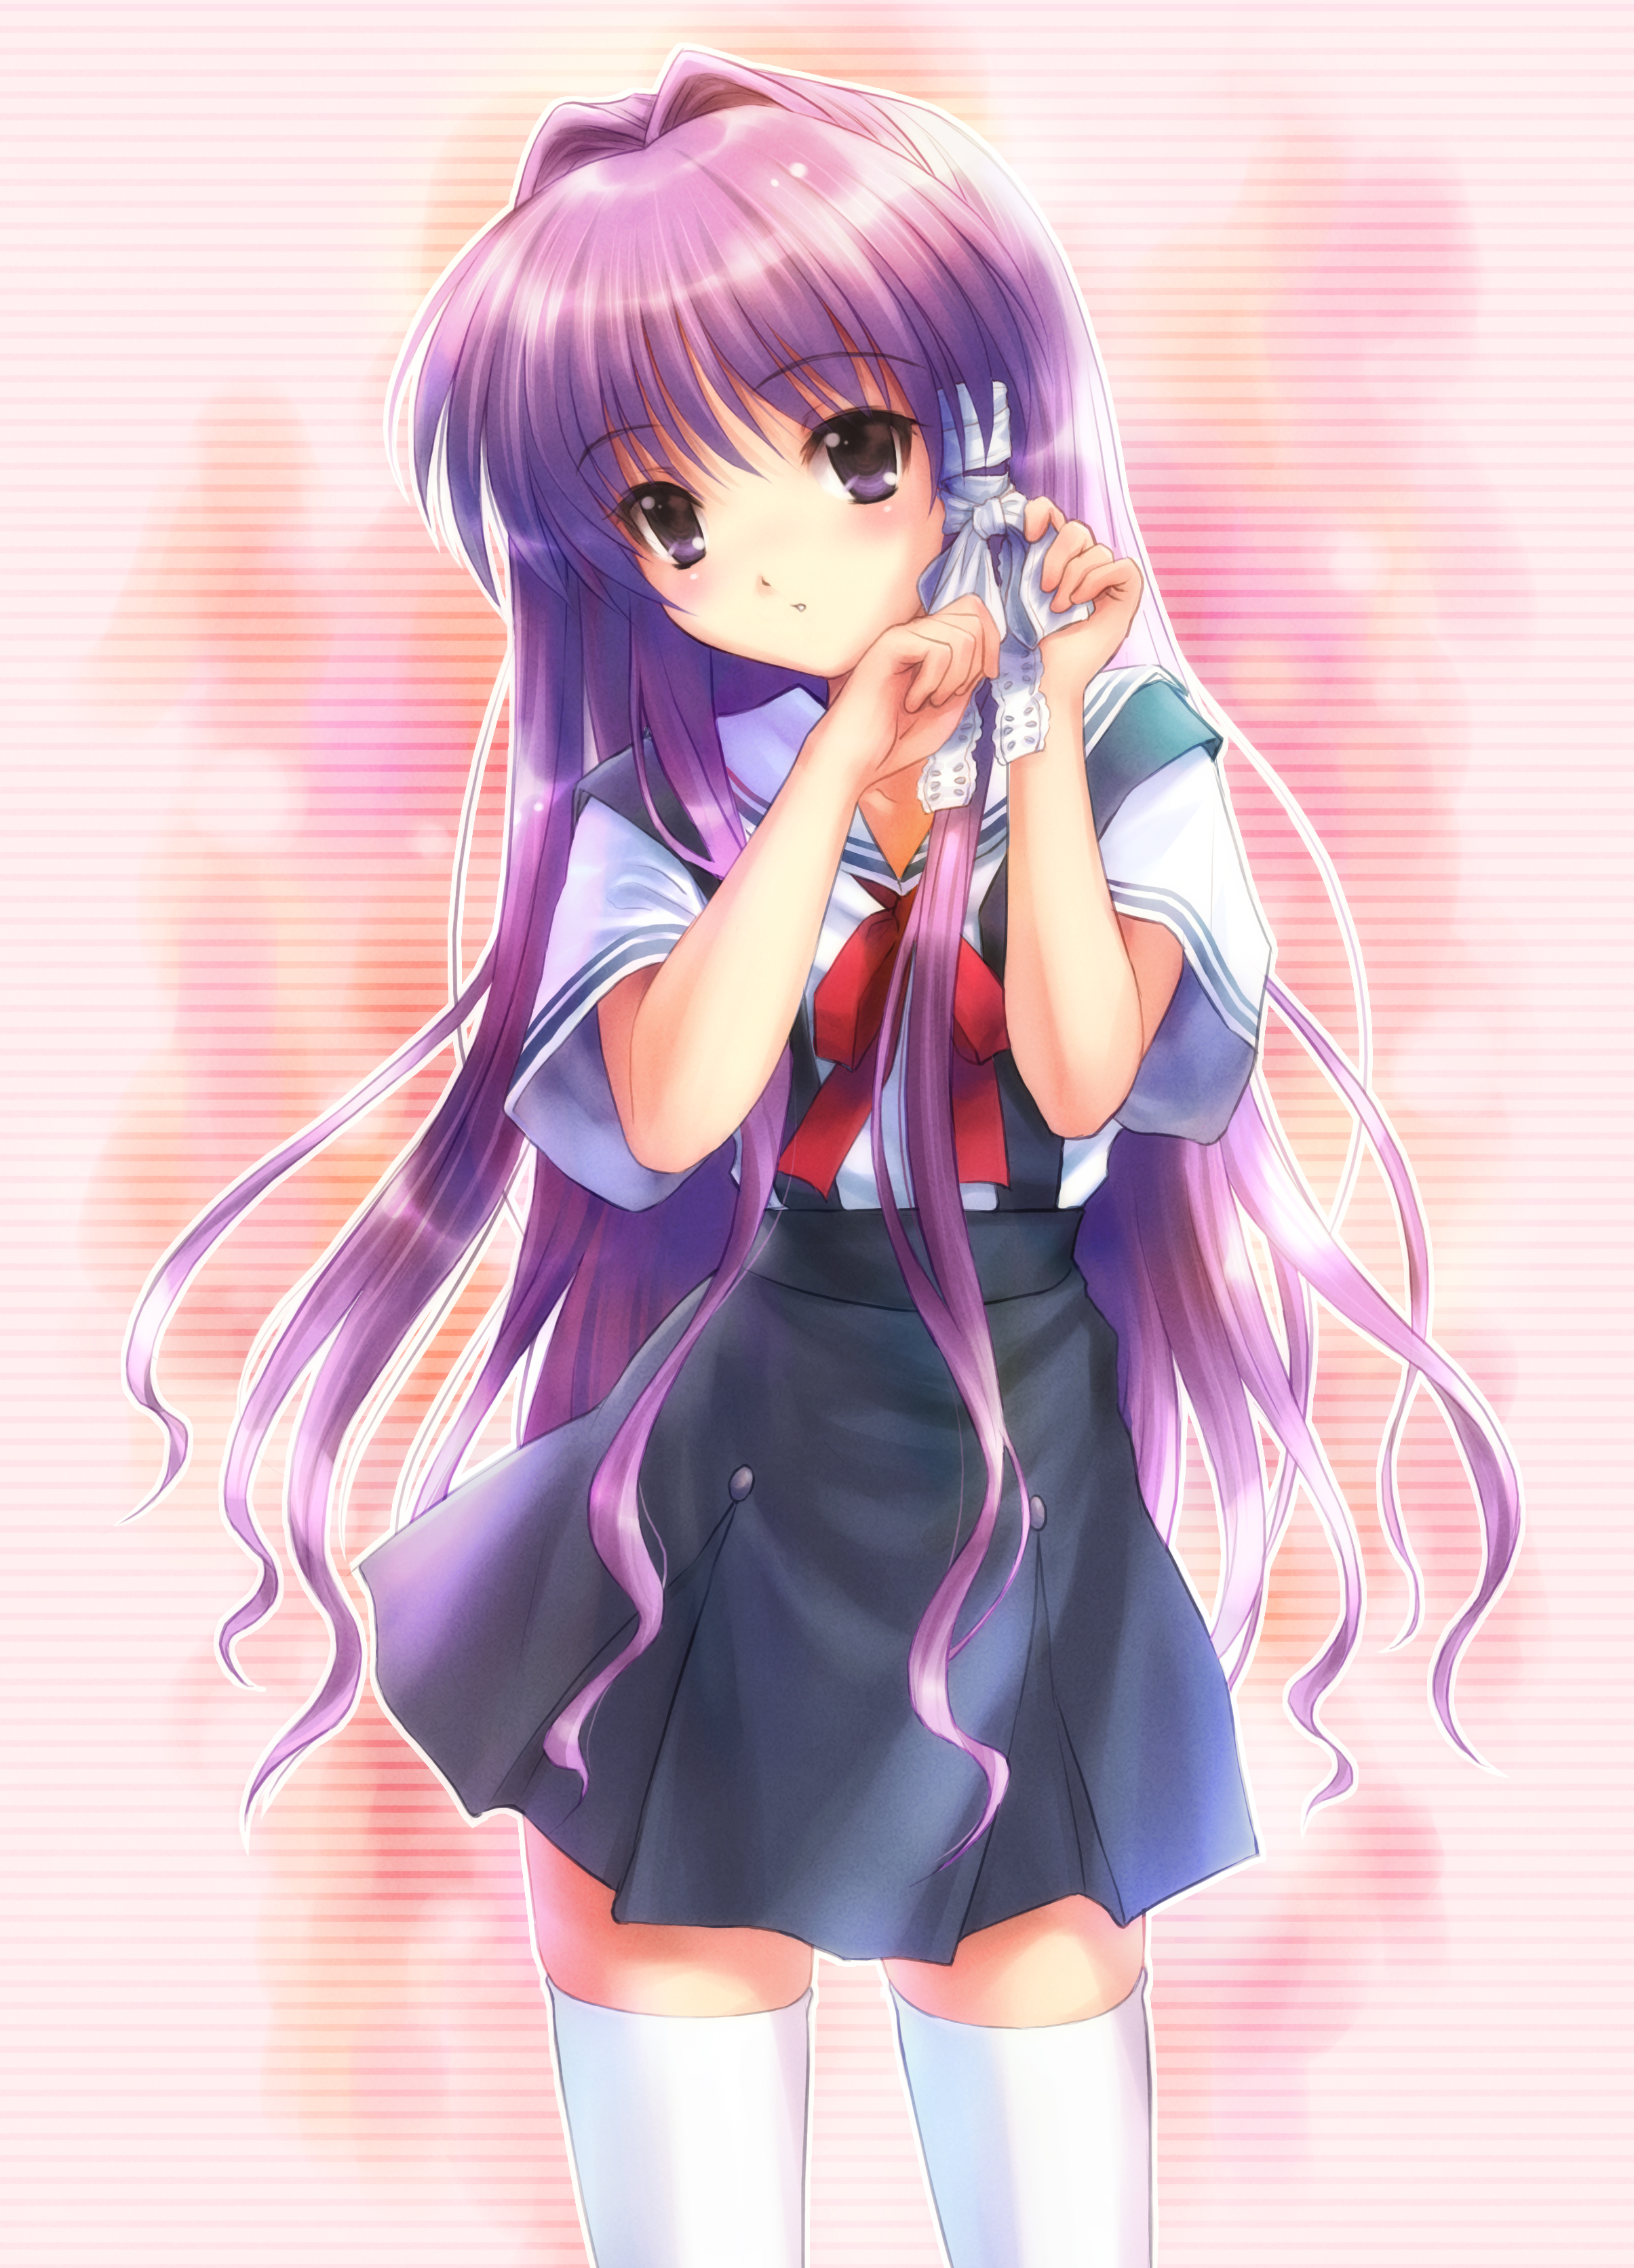 Kyou Fujibayashi | Clannad Wiki | FANDOM powered by Wikia